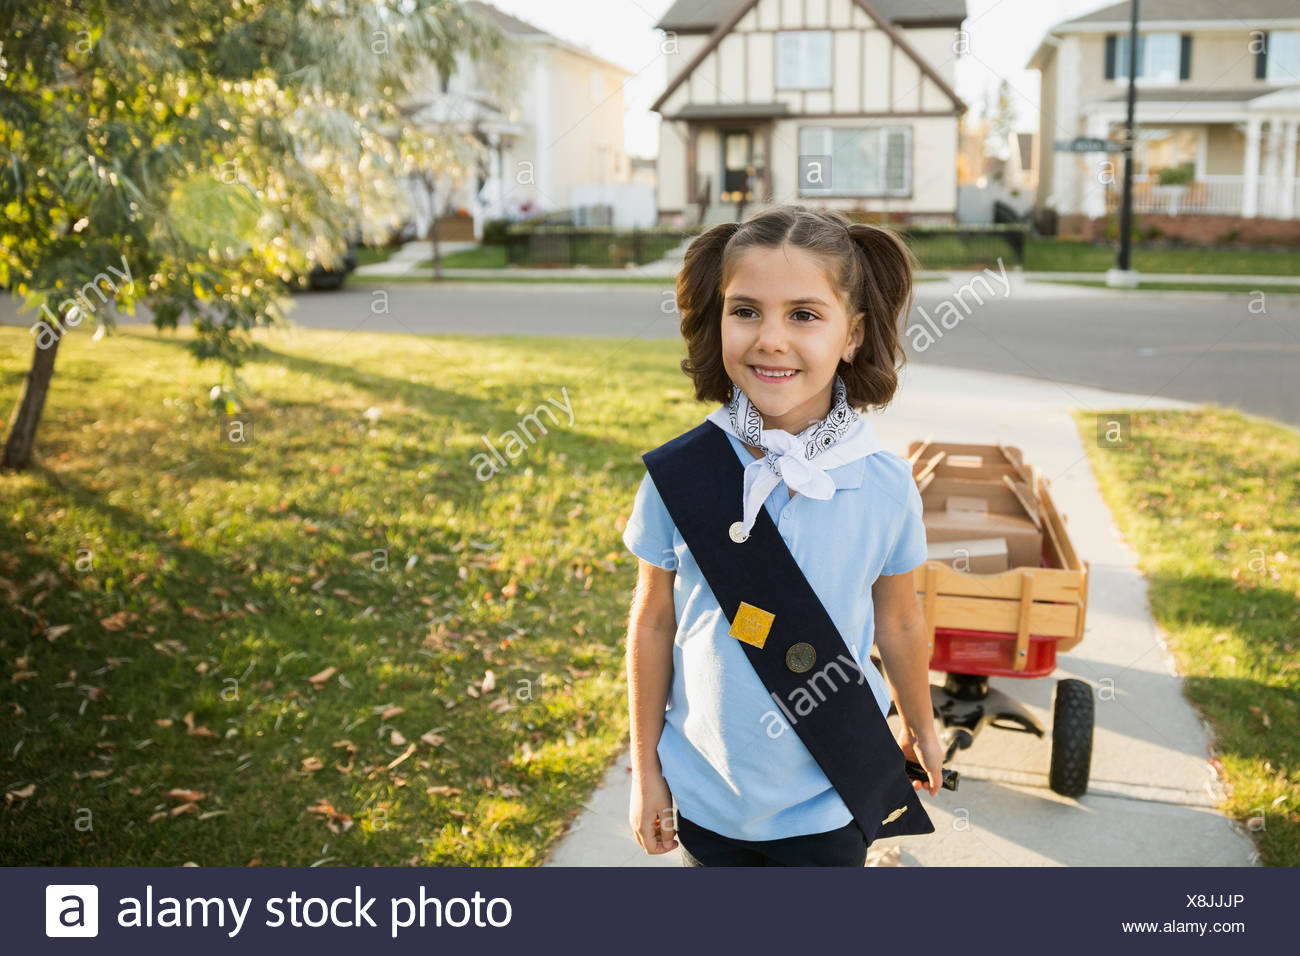 Smiling girl scout with wagon selling cookies neighborhood - Stock Image